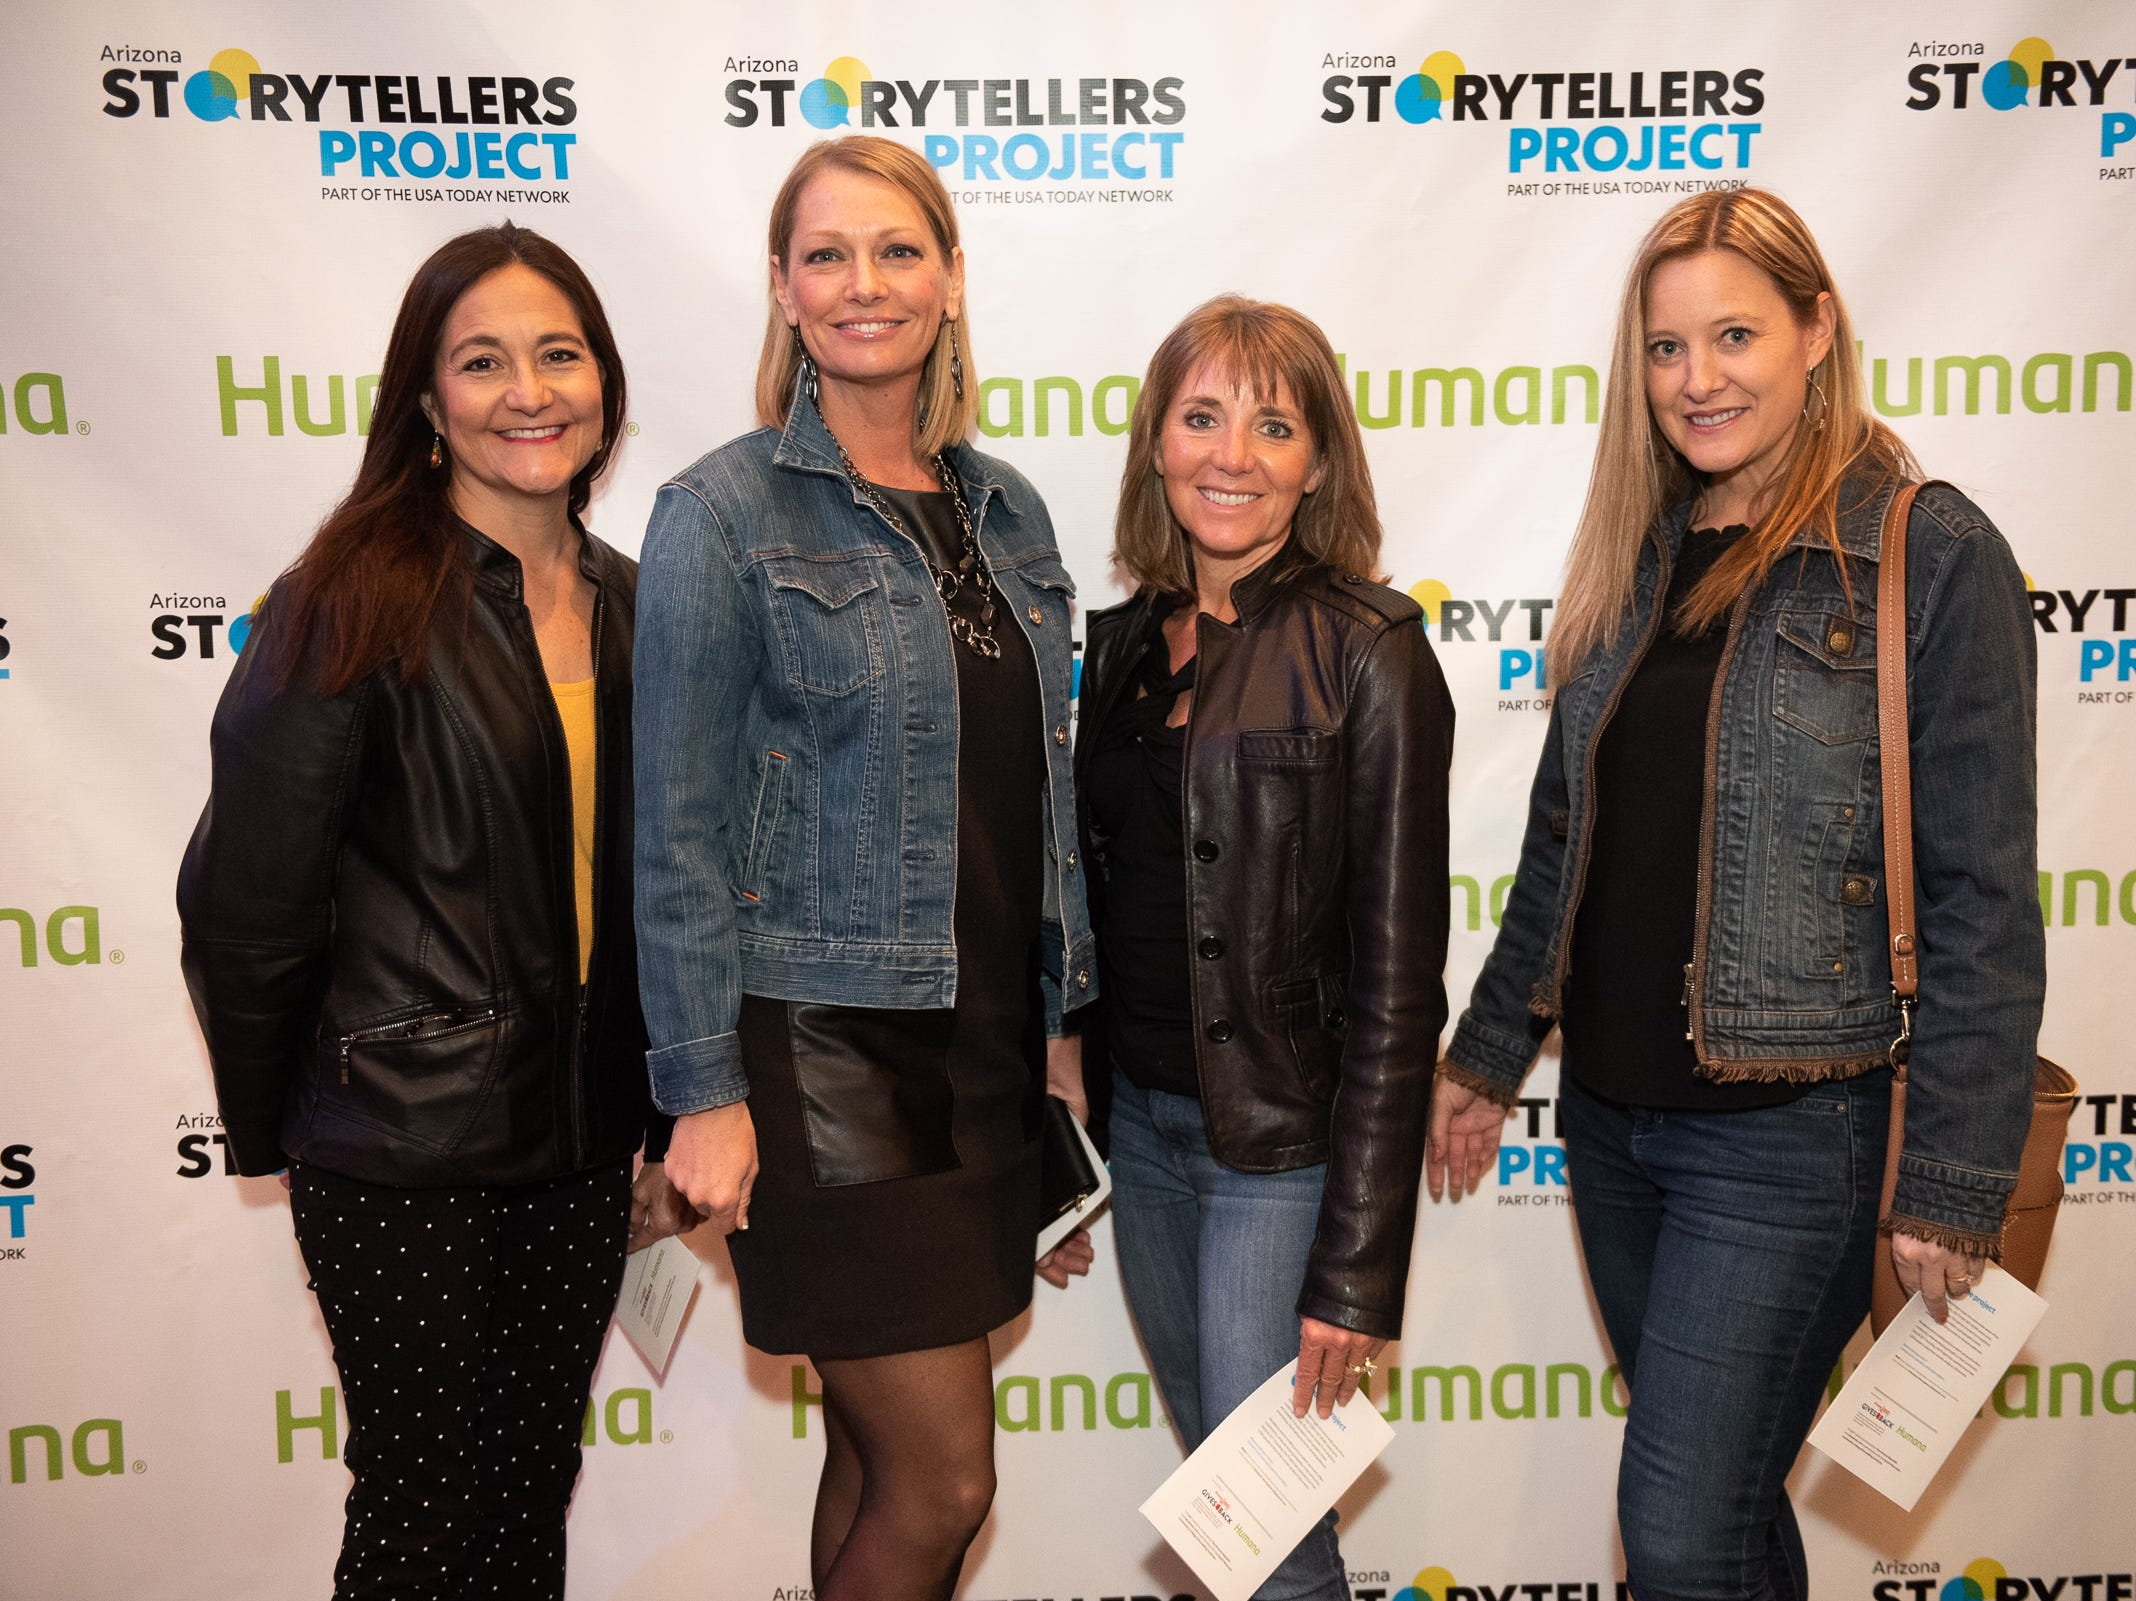 Attendees strike a pose at the Humana/Storytellers Project step and repeat during The Storytellers Project presents Romance - or Not at the Scottsdale Center for Performing Arts on Wednesday, Feb. 13, 2019.